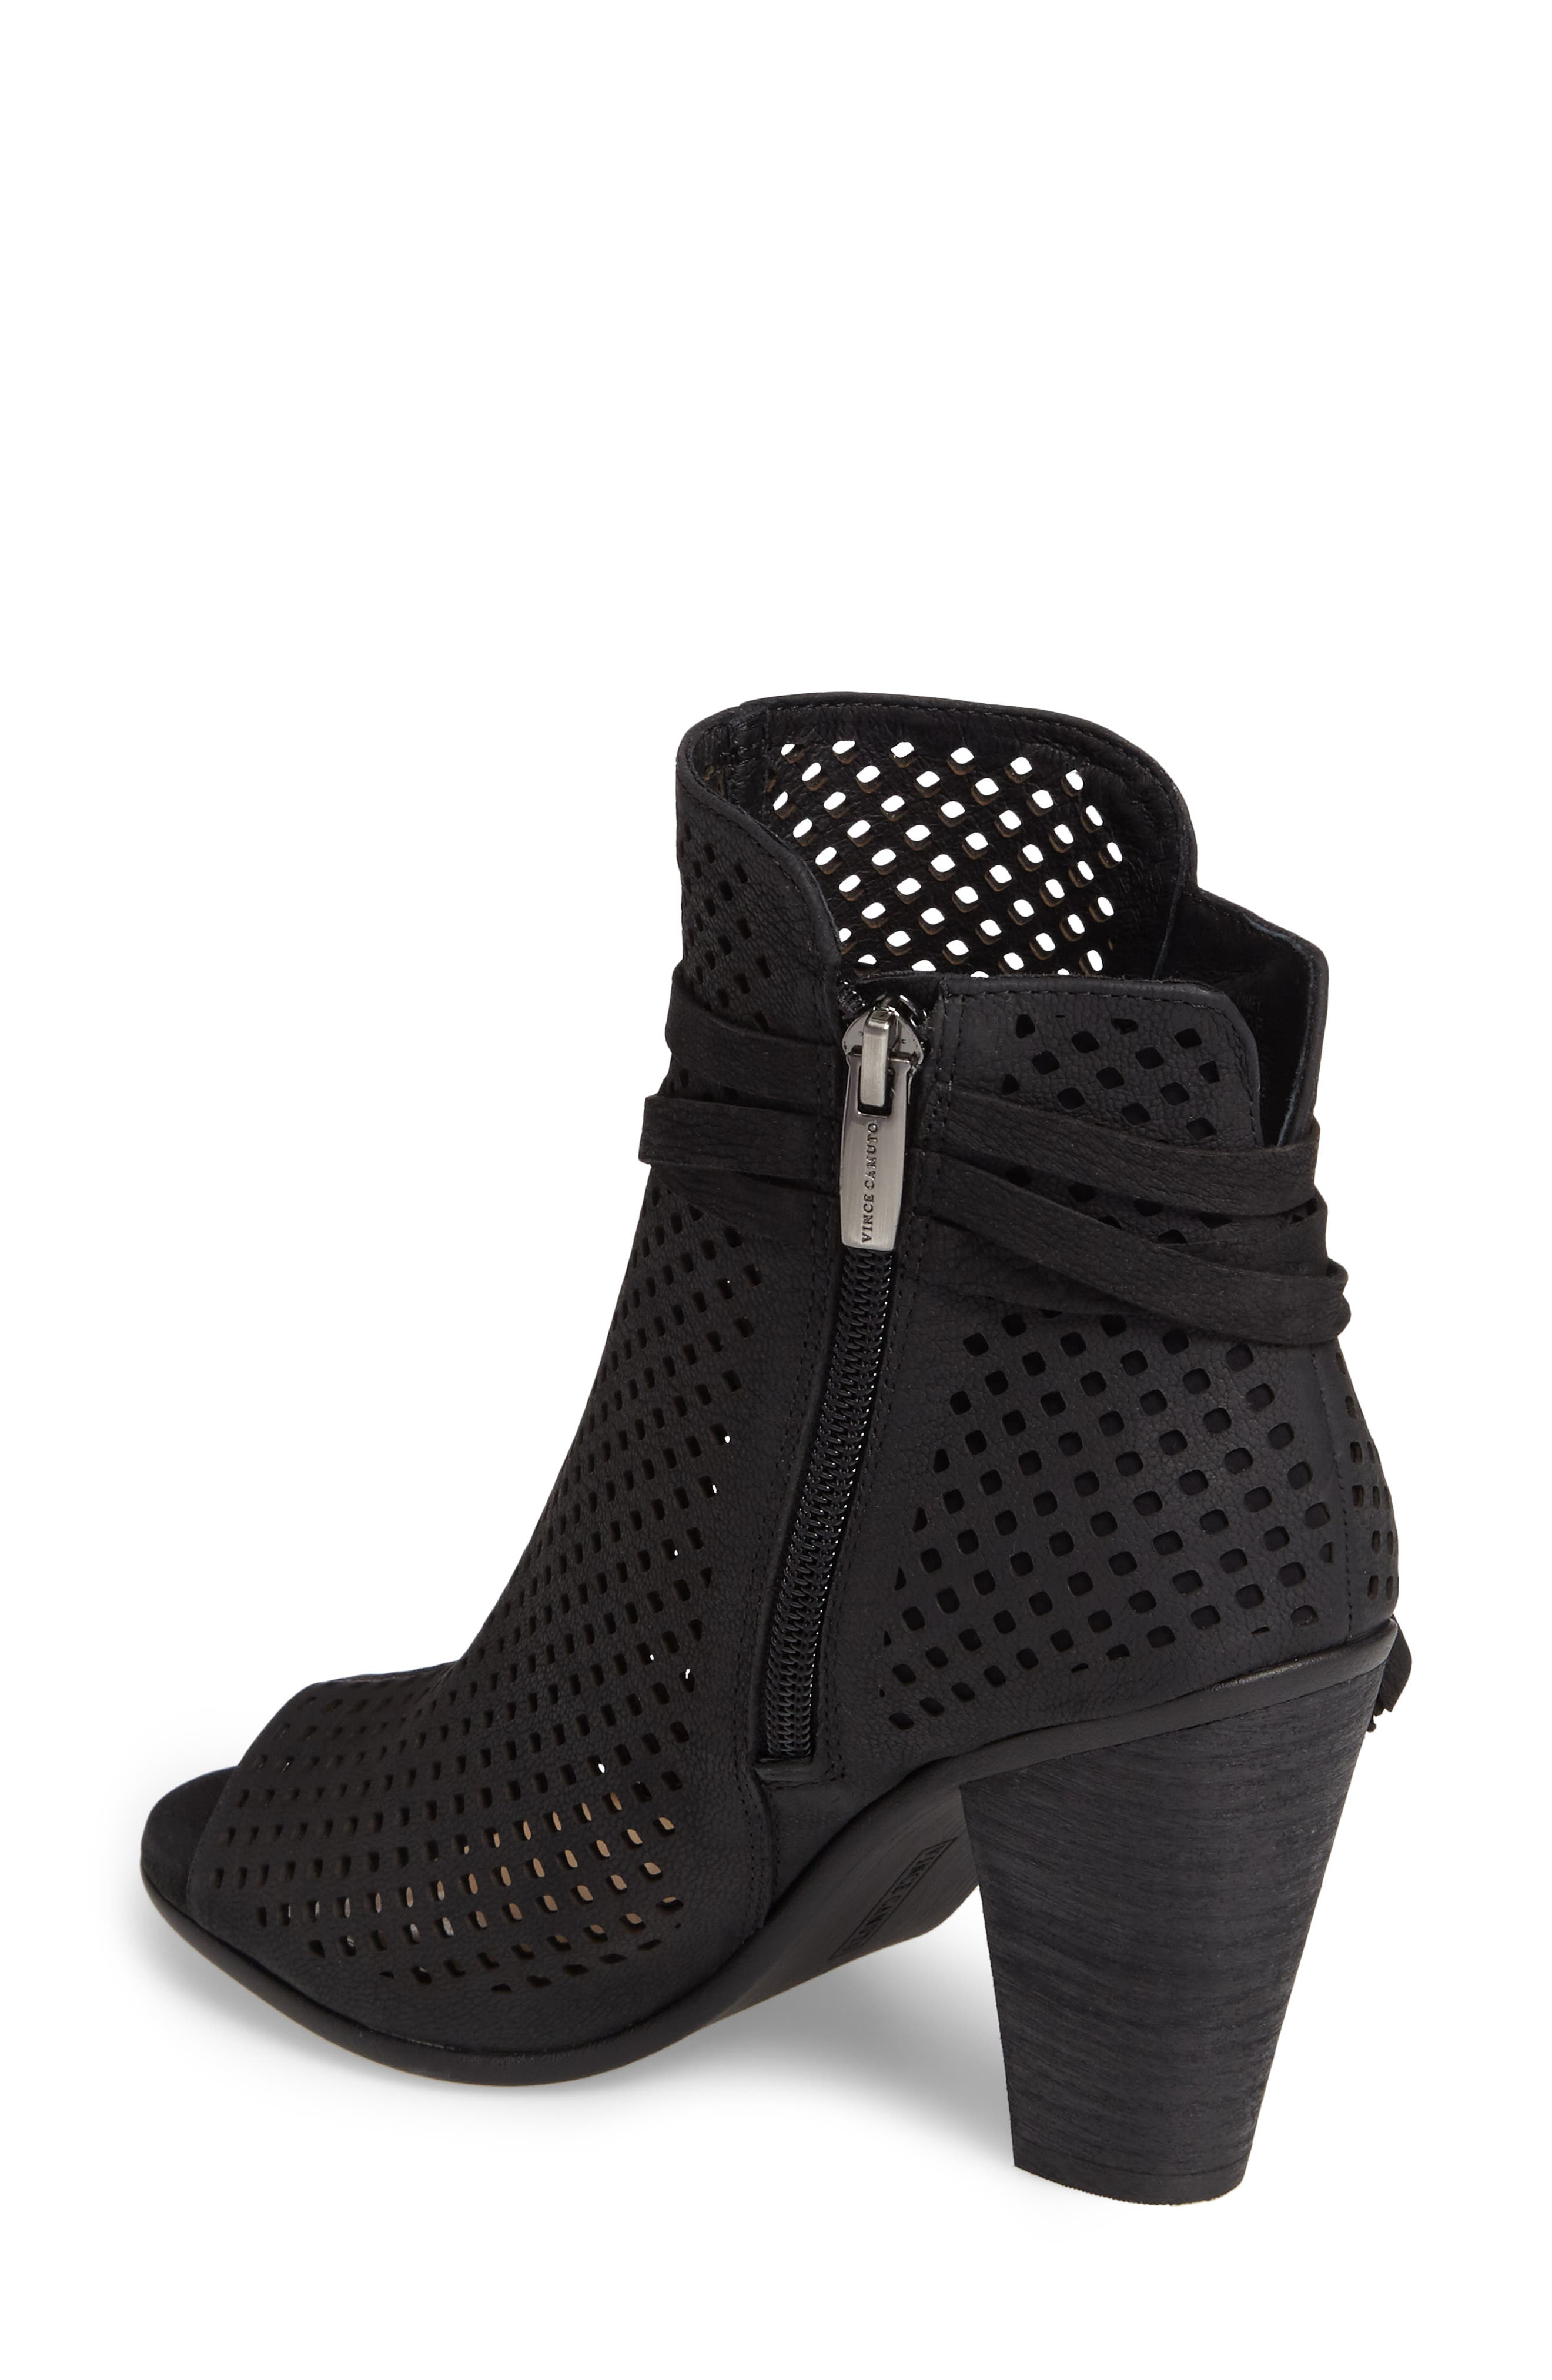 Kamey Perforated Open Toe Bootie,                             Alternate thumbnail 2, color,                             001